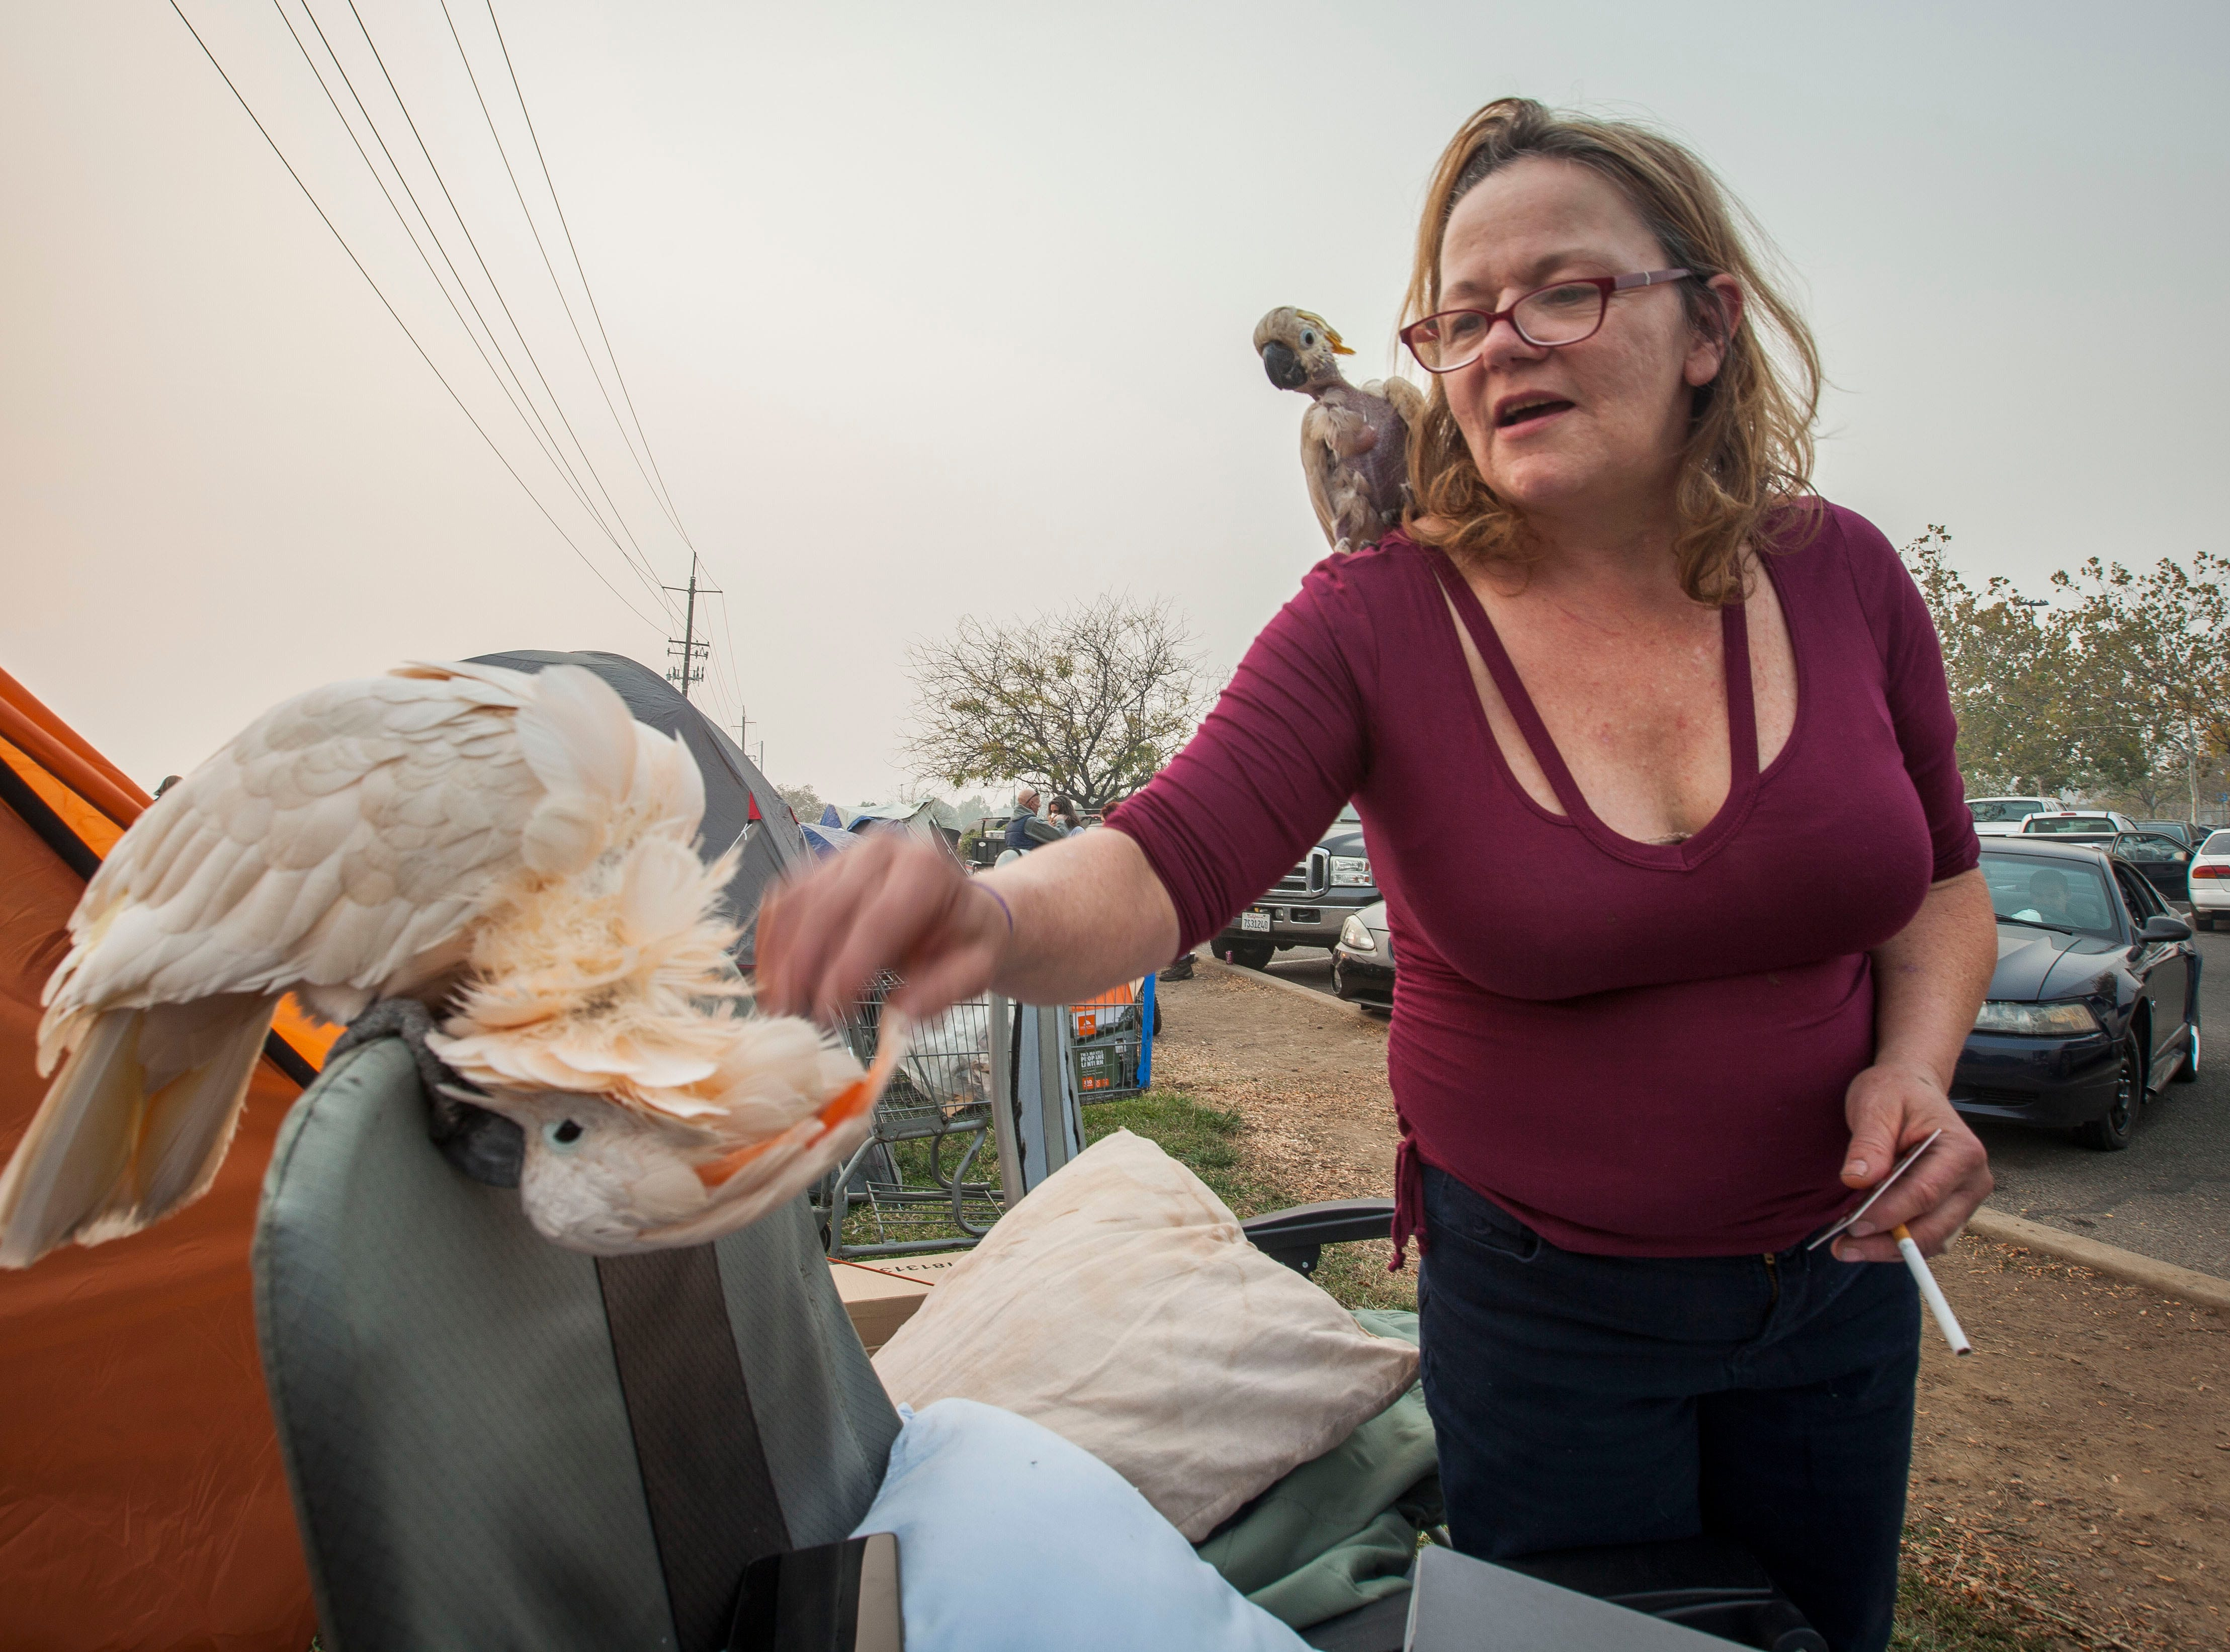 Suzanne Kaksonen, of Paradise, rubs the neck of Buddy, while her other bird Lady Bird sits on her shoulder next to their tent in a make-shift compound next to the Walmart in Chico, CA, Wednesday, November 14, 2018. Kaksonen lost her home in the Camp Fire but feels blessed to have saved her dogs and her two 31-year-old cockatoos.